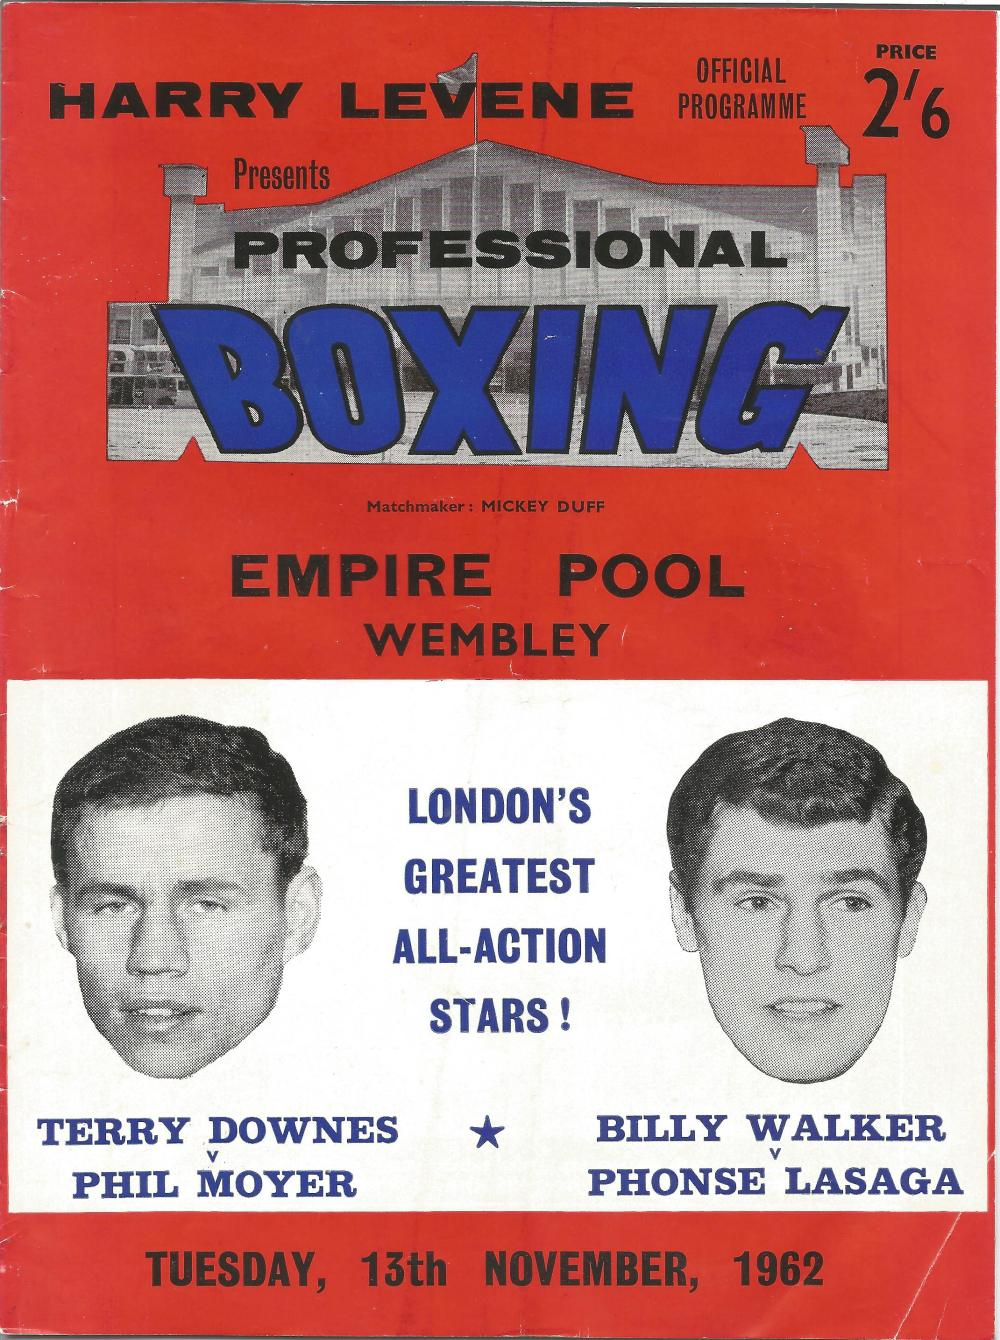 Boxing Terry Downes v Phil Moyer vintage fight programme Empire Pool Wembley 13th November 1962.